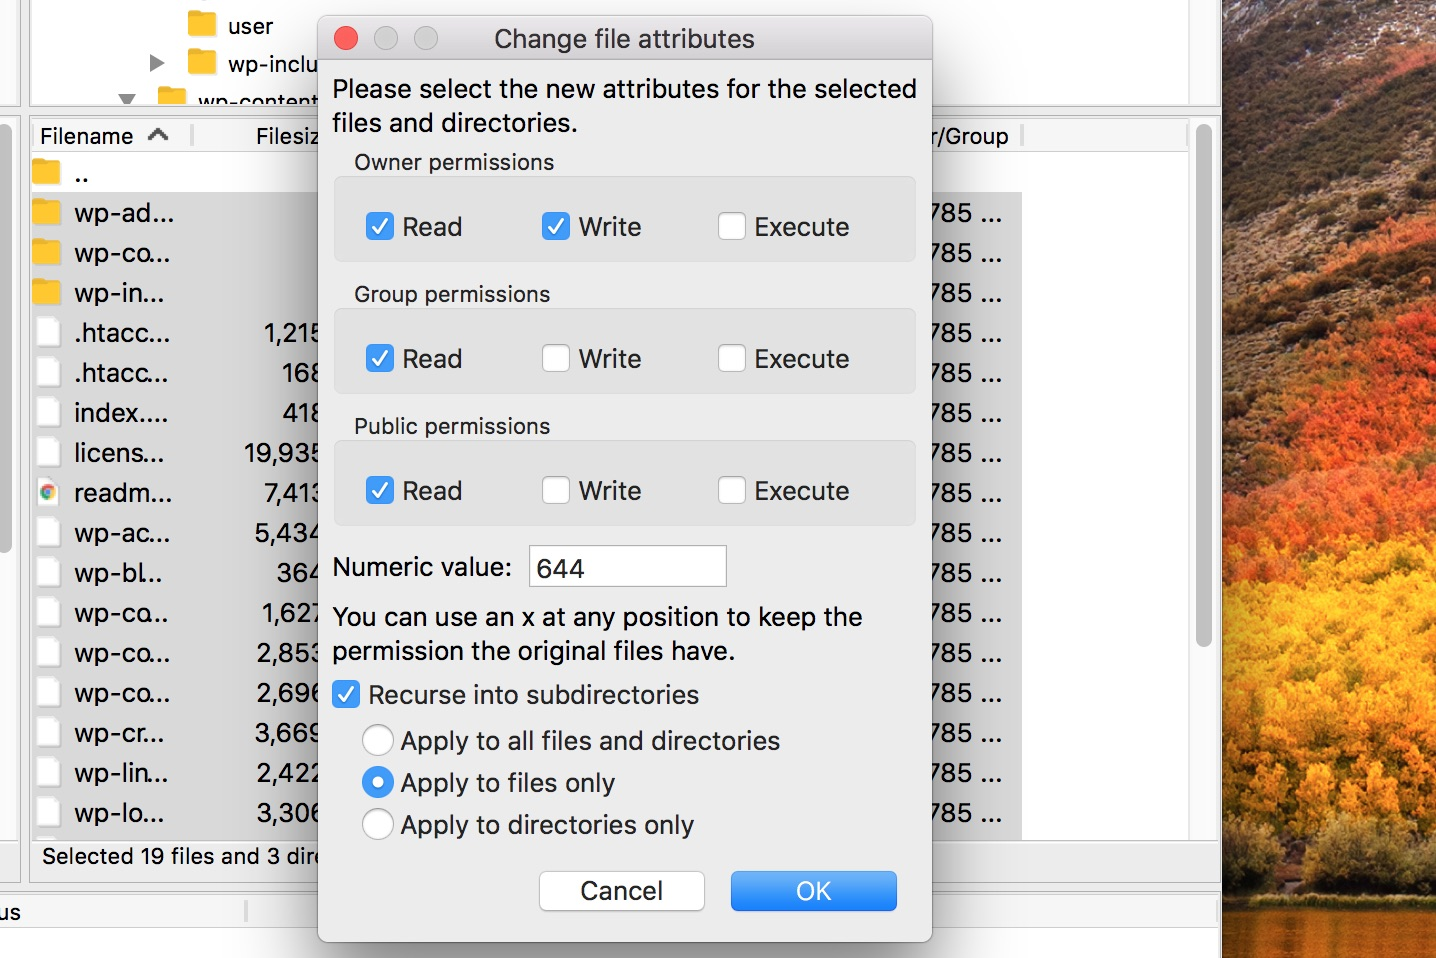 change-file-attribute-window-set-to-apply-to-files-only